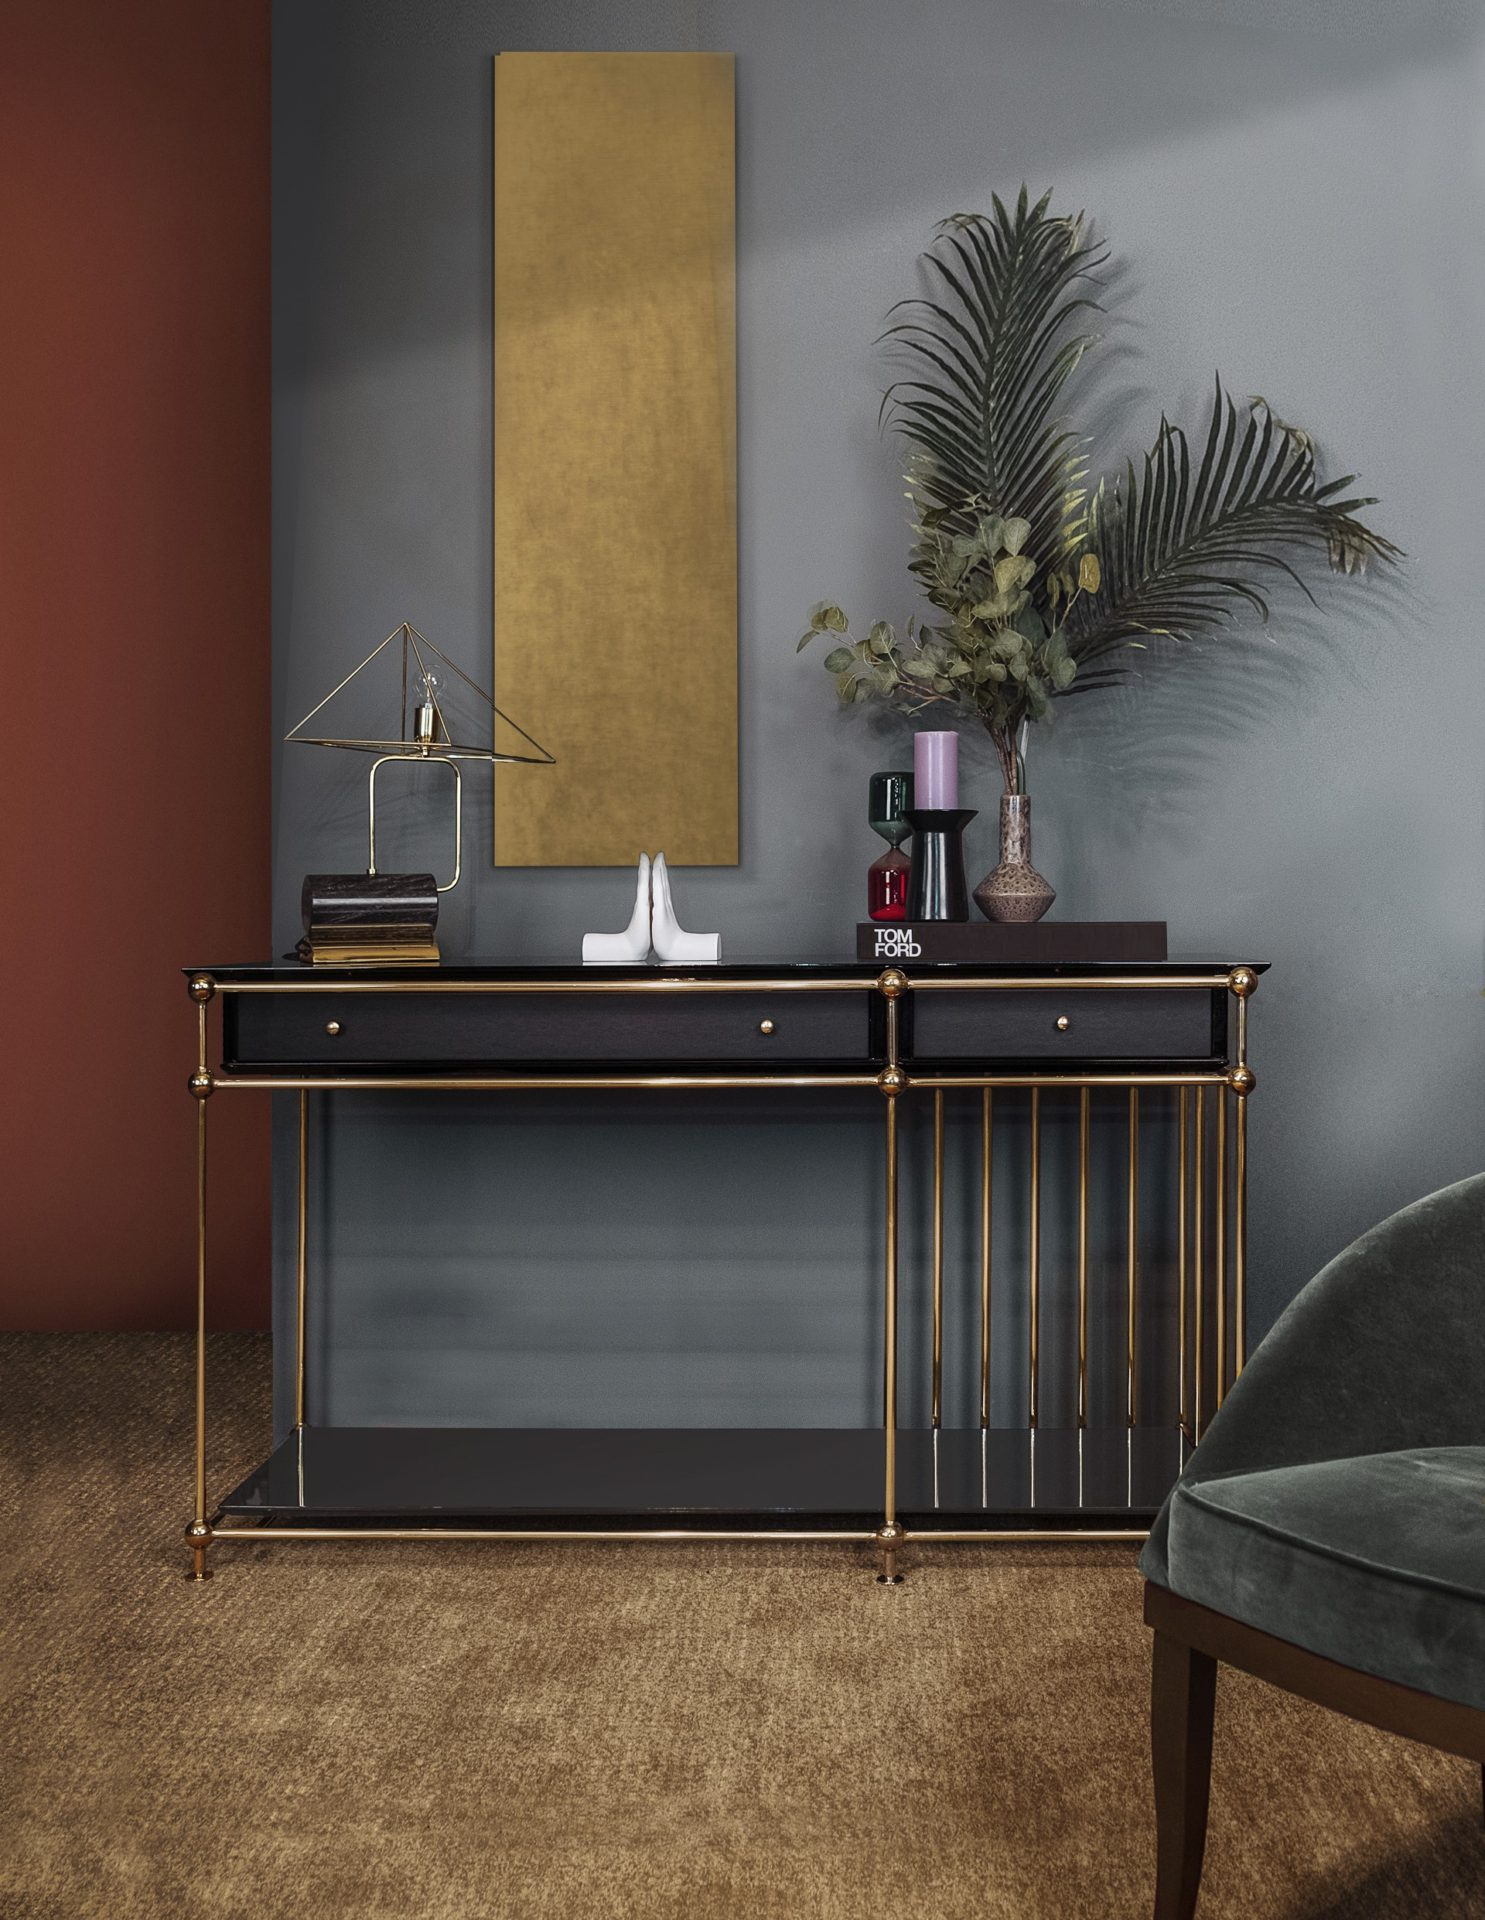 Vegas Console with White House table lamp